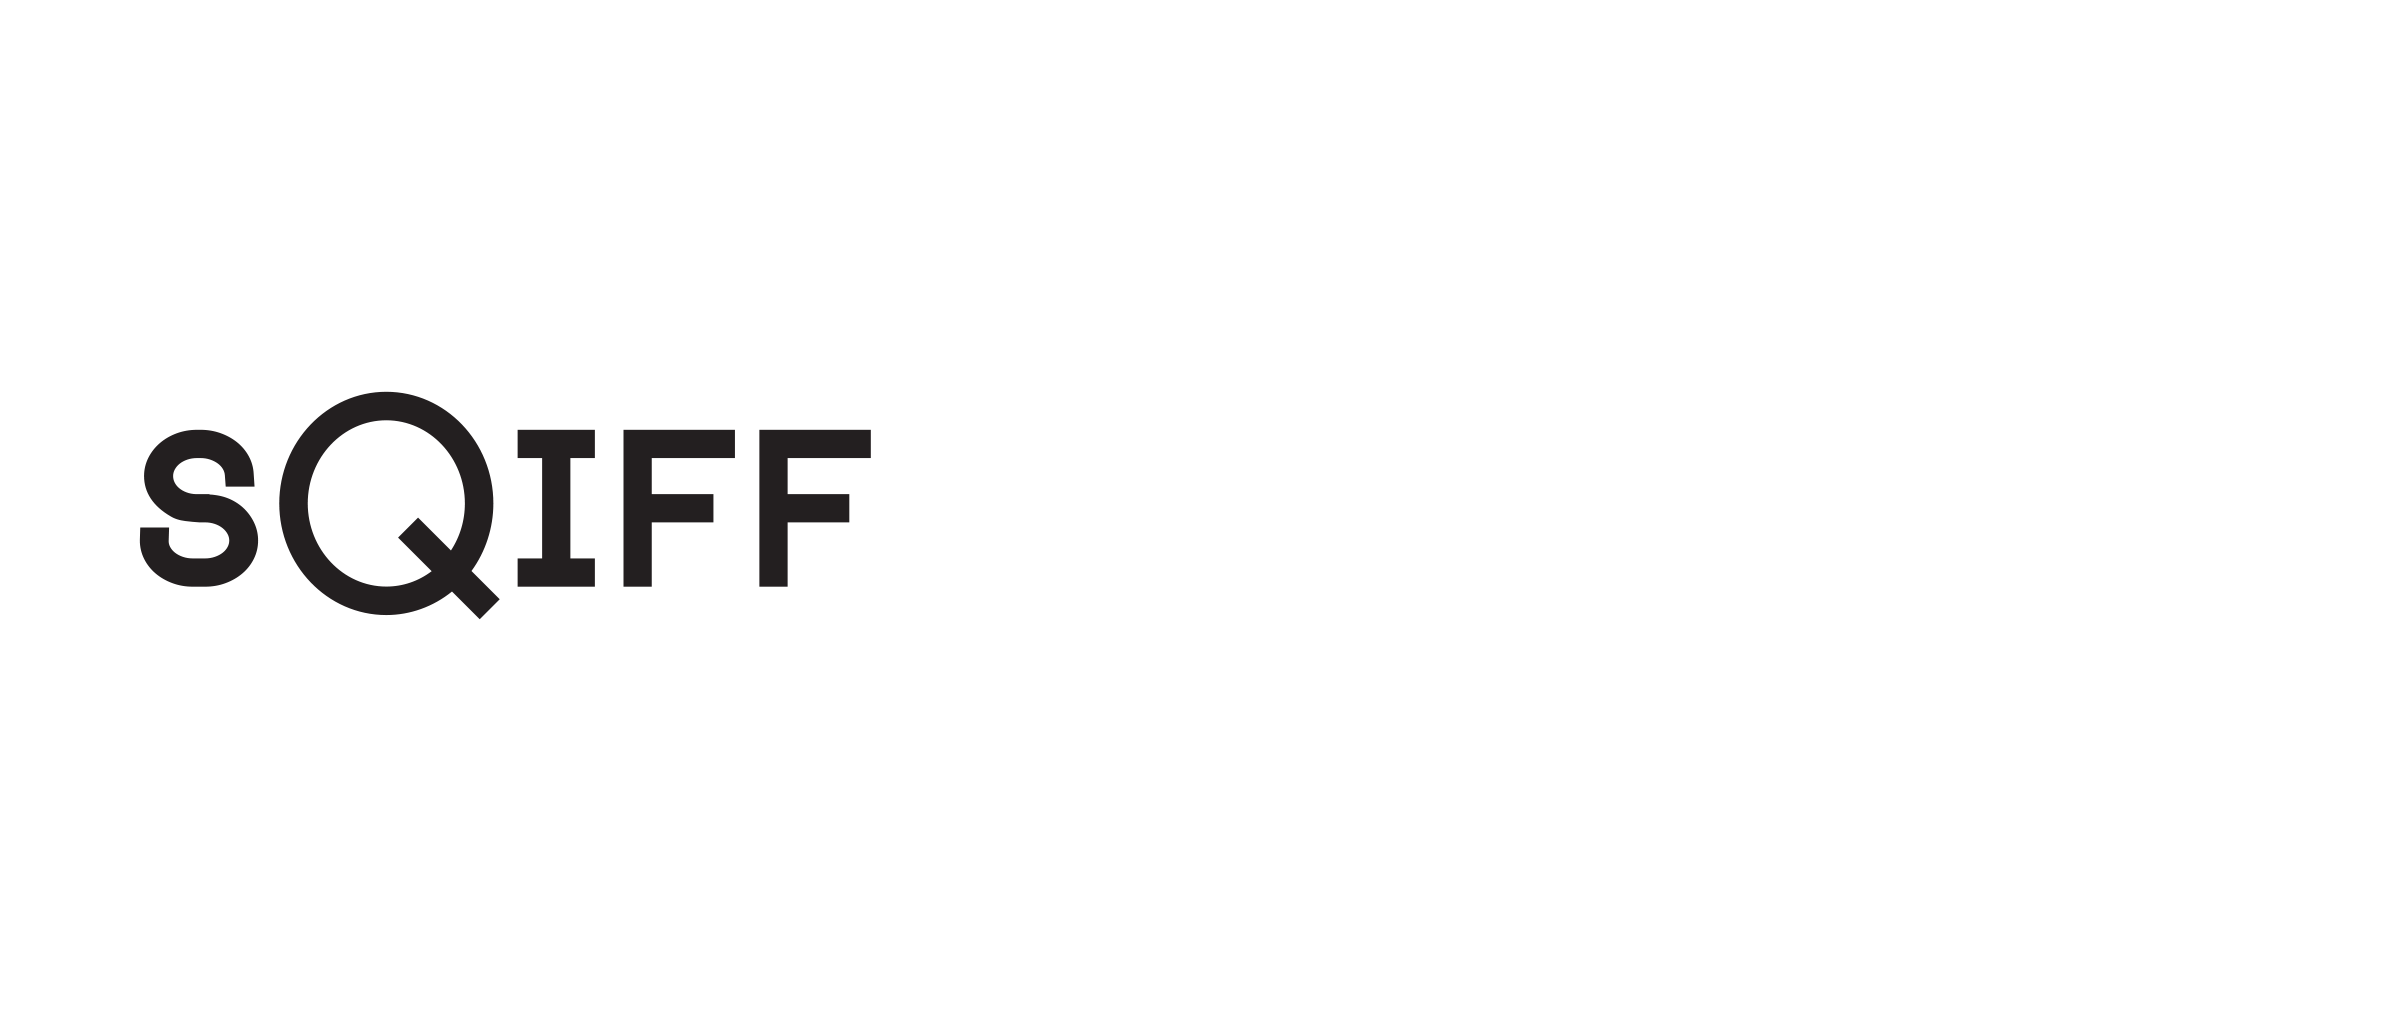 Scottish Queer International Film Festival